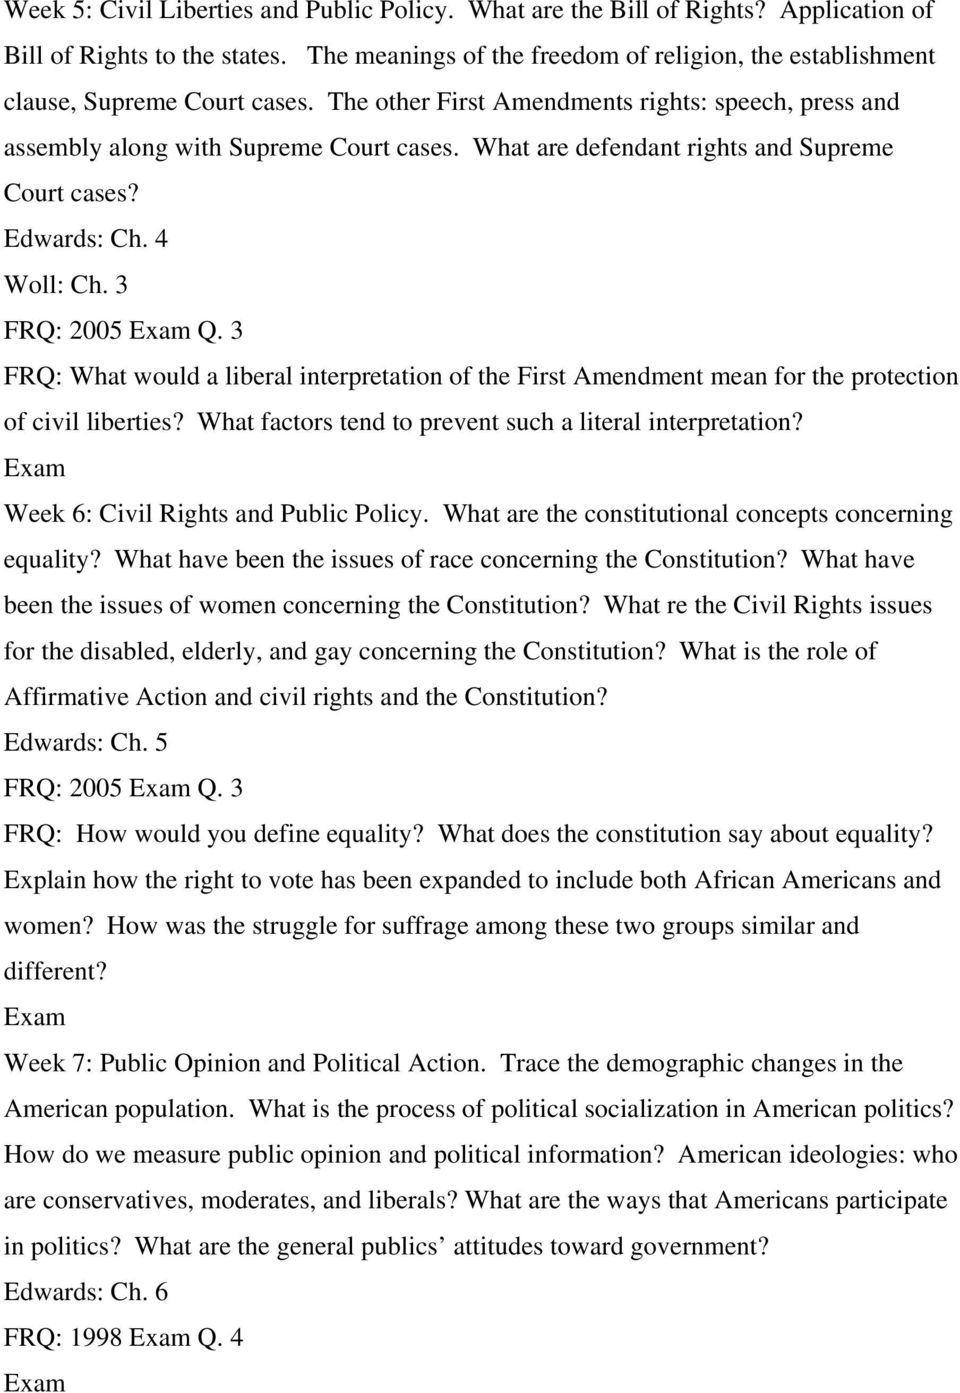 What are defendant rights and Supreme Court cases? Edwards: Ch. 4 Woll: Ch. 3 FRQ: 2005 Q. 3 FRQ: What would a liberal interpretation of the First Amendment mean for the protection of civil liberties?